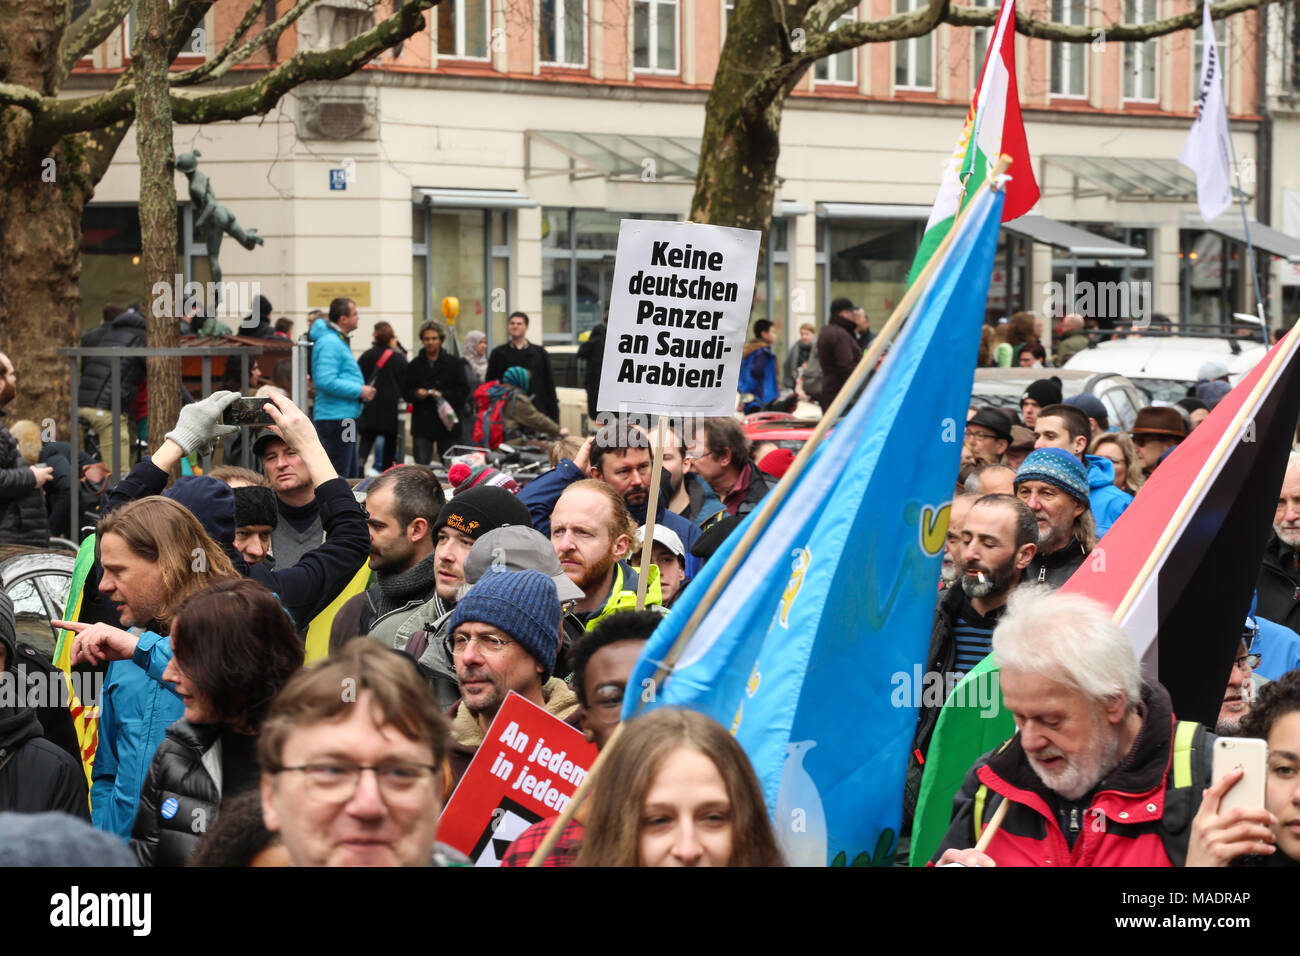 Munich, Germany. 31st Mar, 2018. Some thousand joined the Ostermarsch (easter march) for peace and disarmament. The Ostermarsch is a traditional peace demonstration, which is held yearly in hundreds of German towns. Credit: Alexander Pohl/Pacific Press/Alamy Live News Credit: PACIFIC PRESS/Alamy Live News - Stock Image